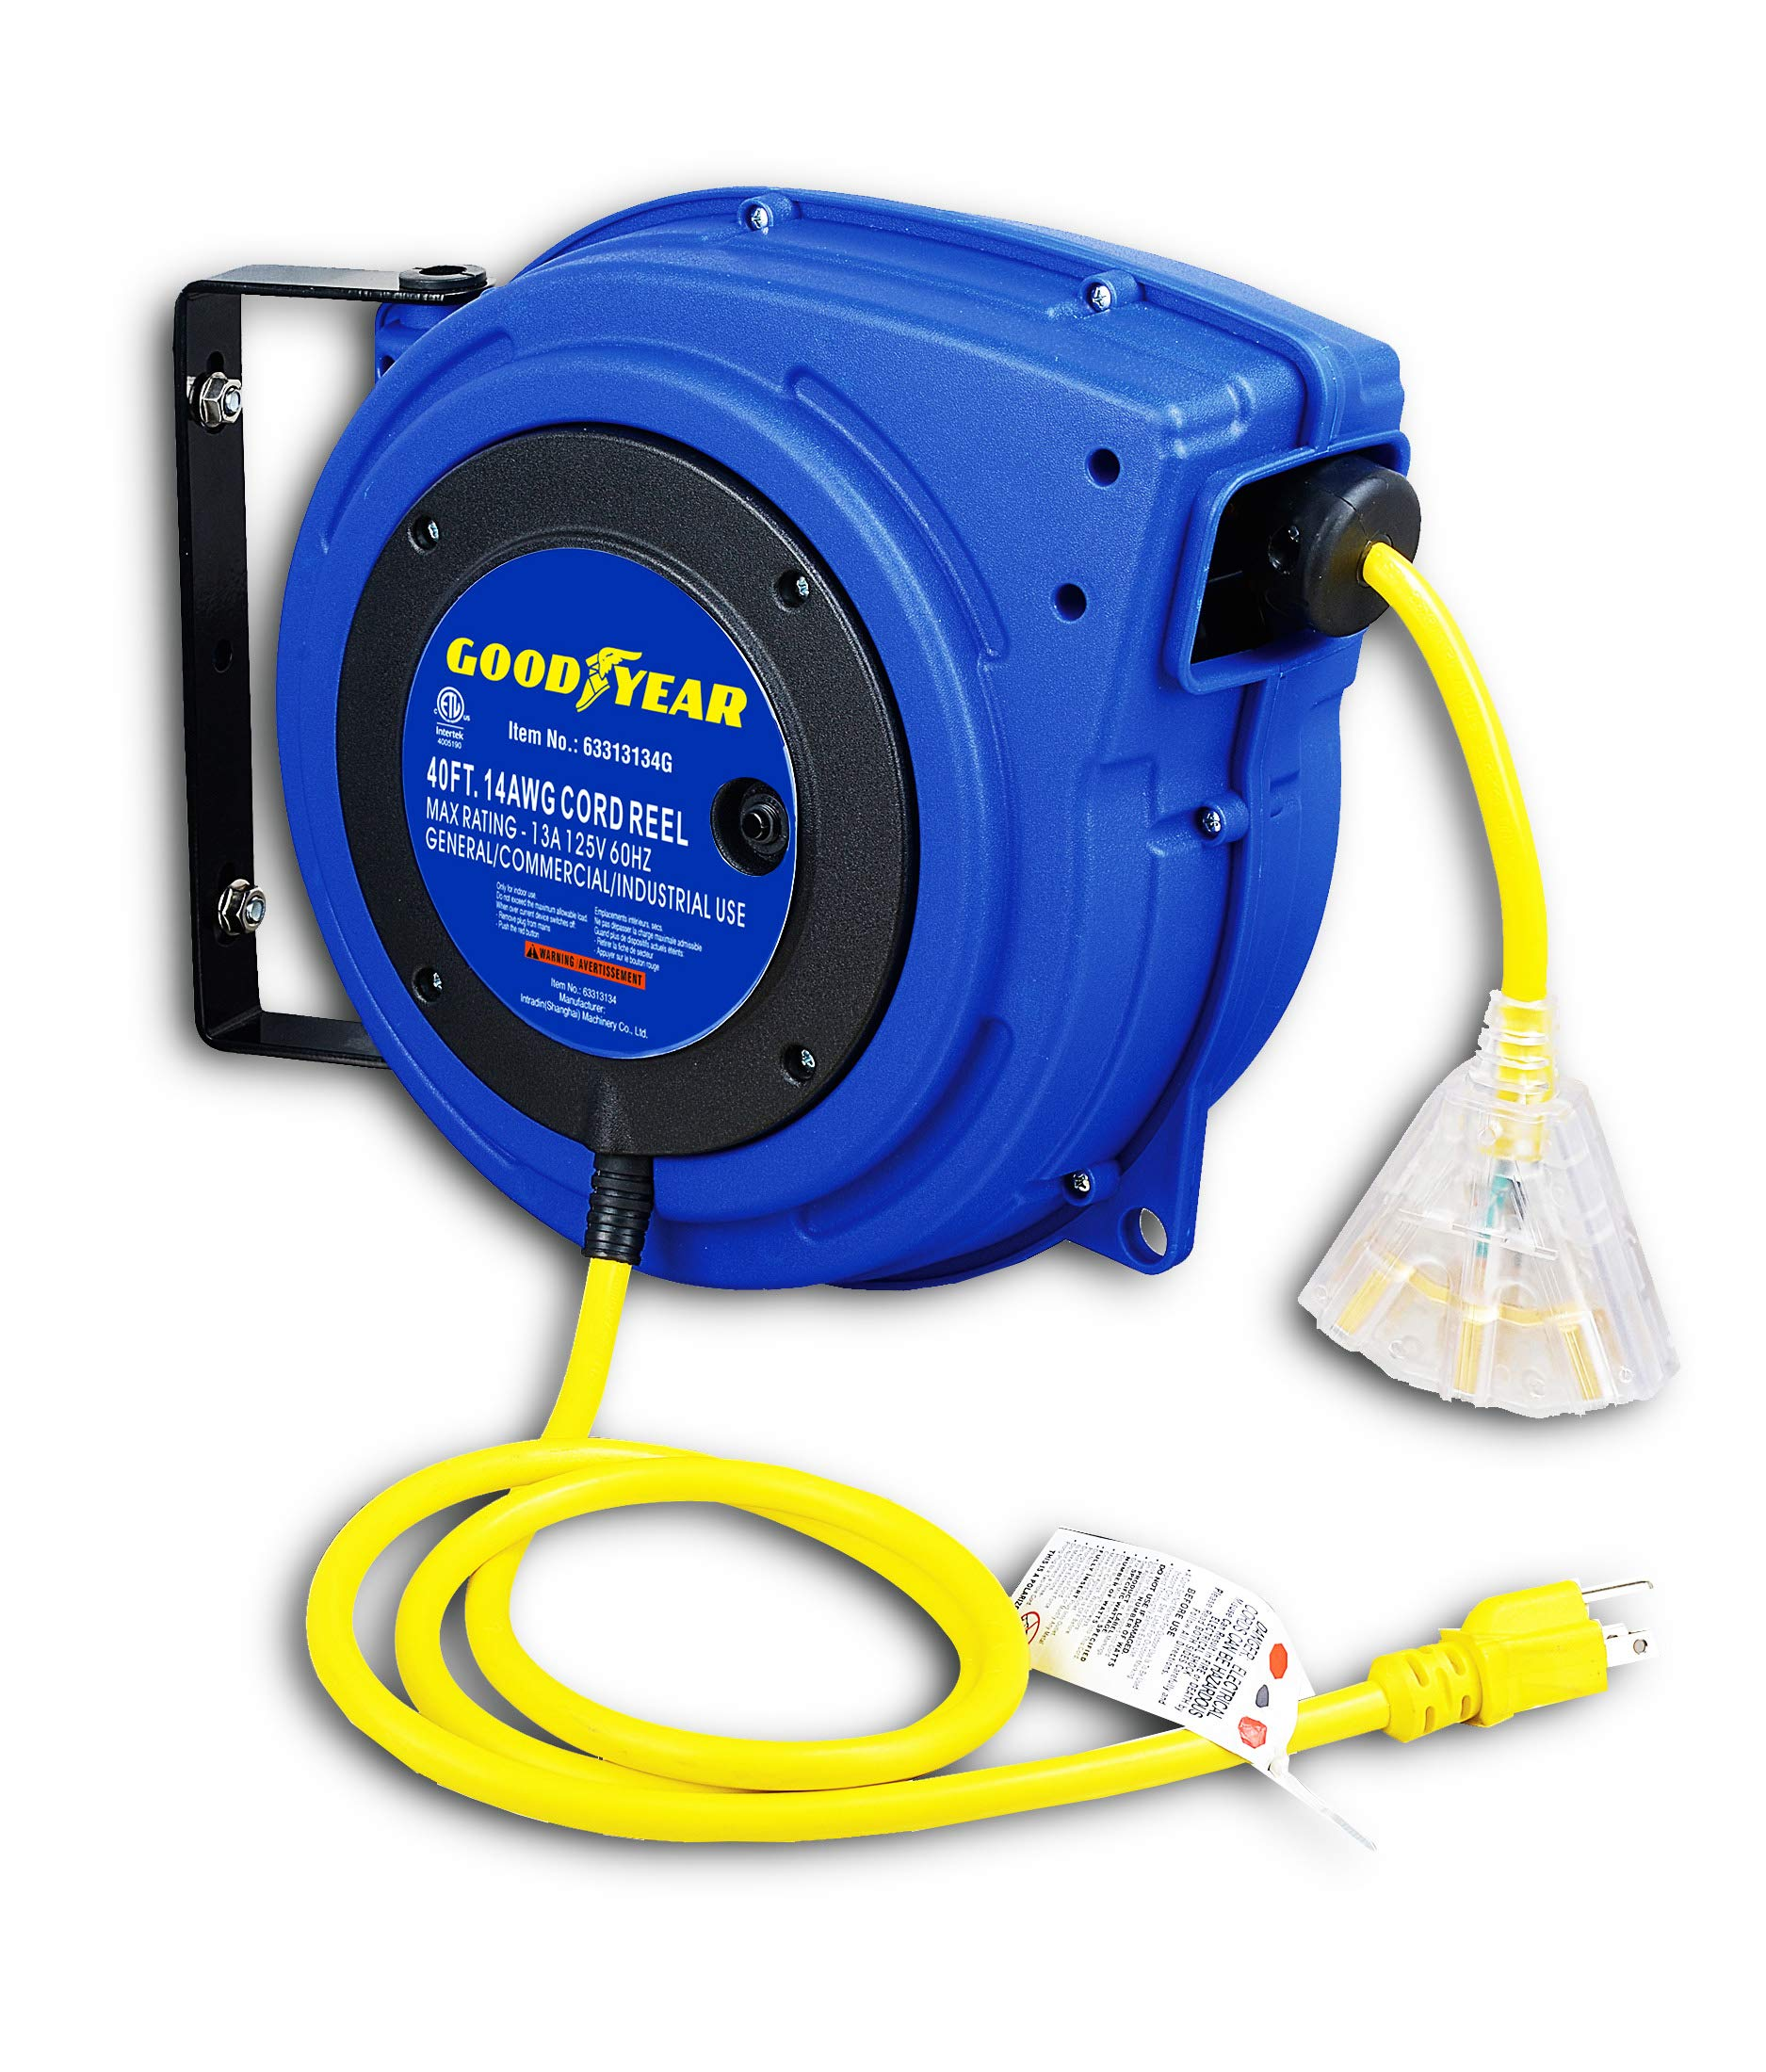 Goodyear Extension Cord Reel, 40 ft, 14AWG/3C SJTOW, Triple Tap with LED Lighted Connector, Heavy Duty by Goodyear